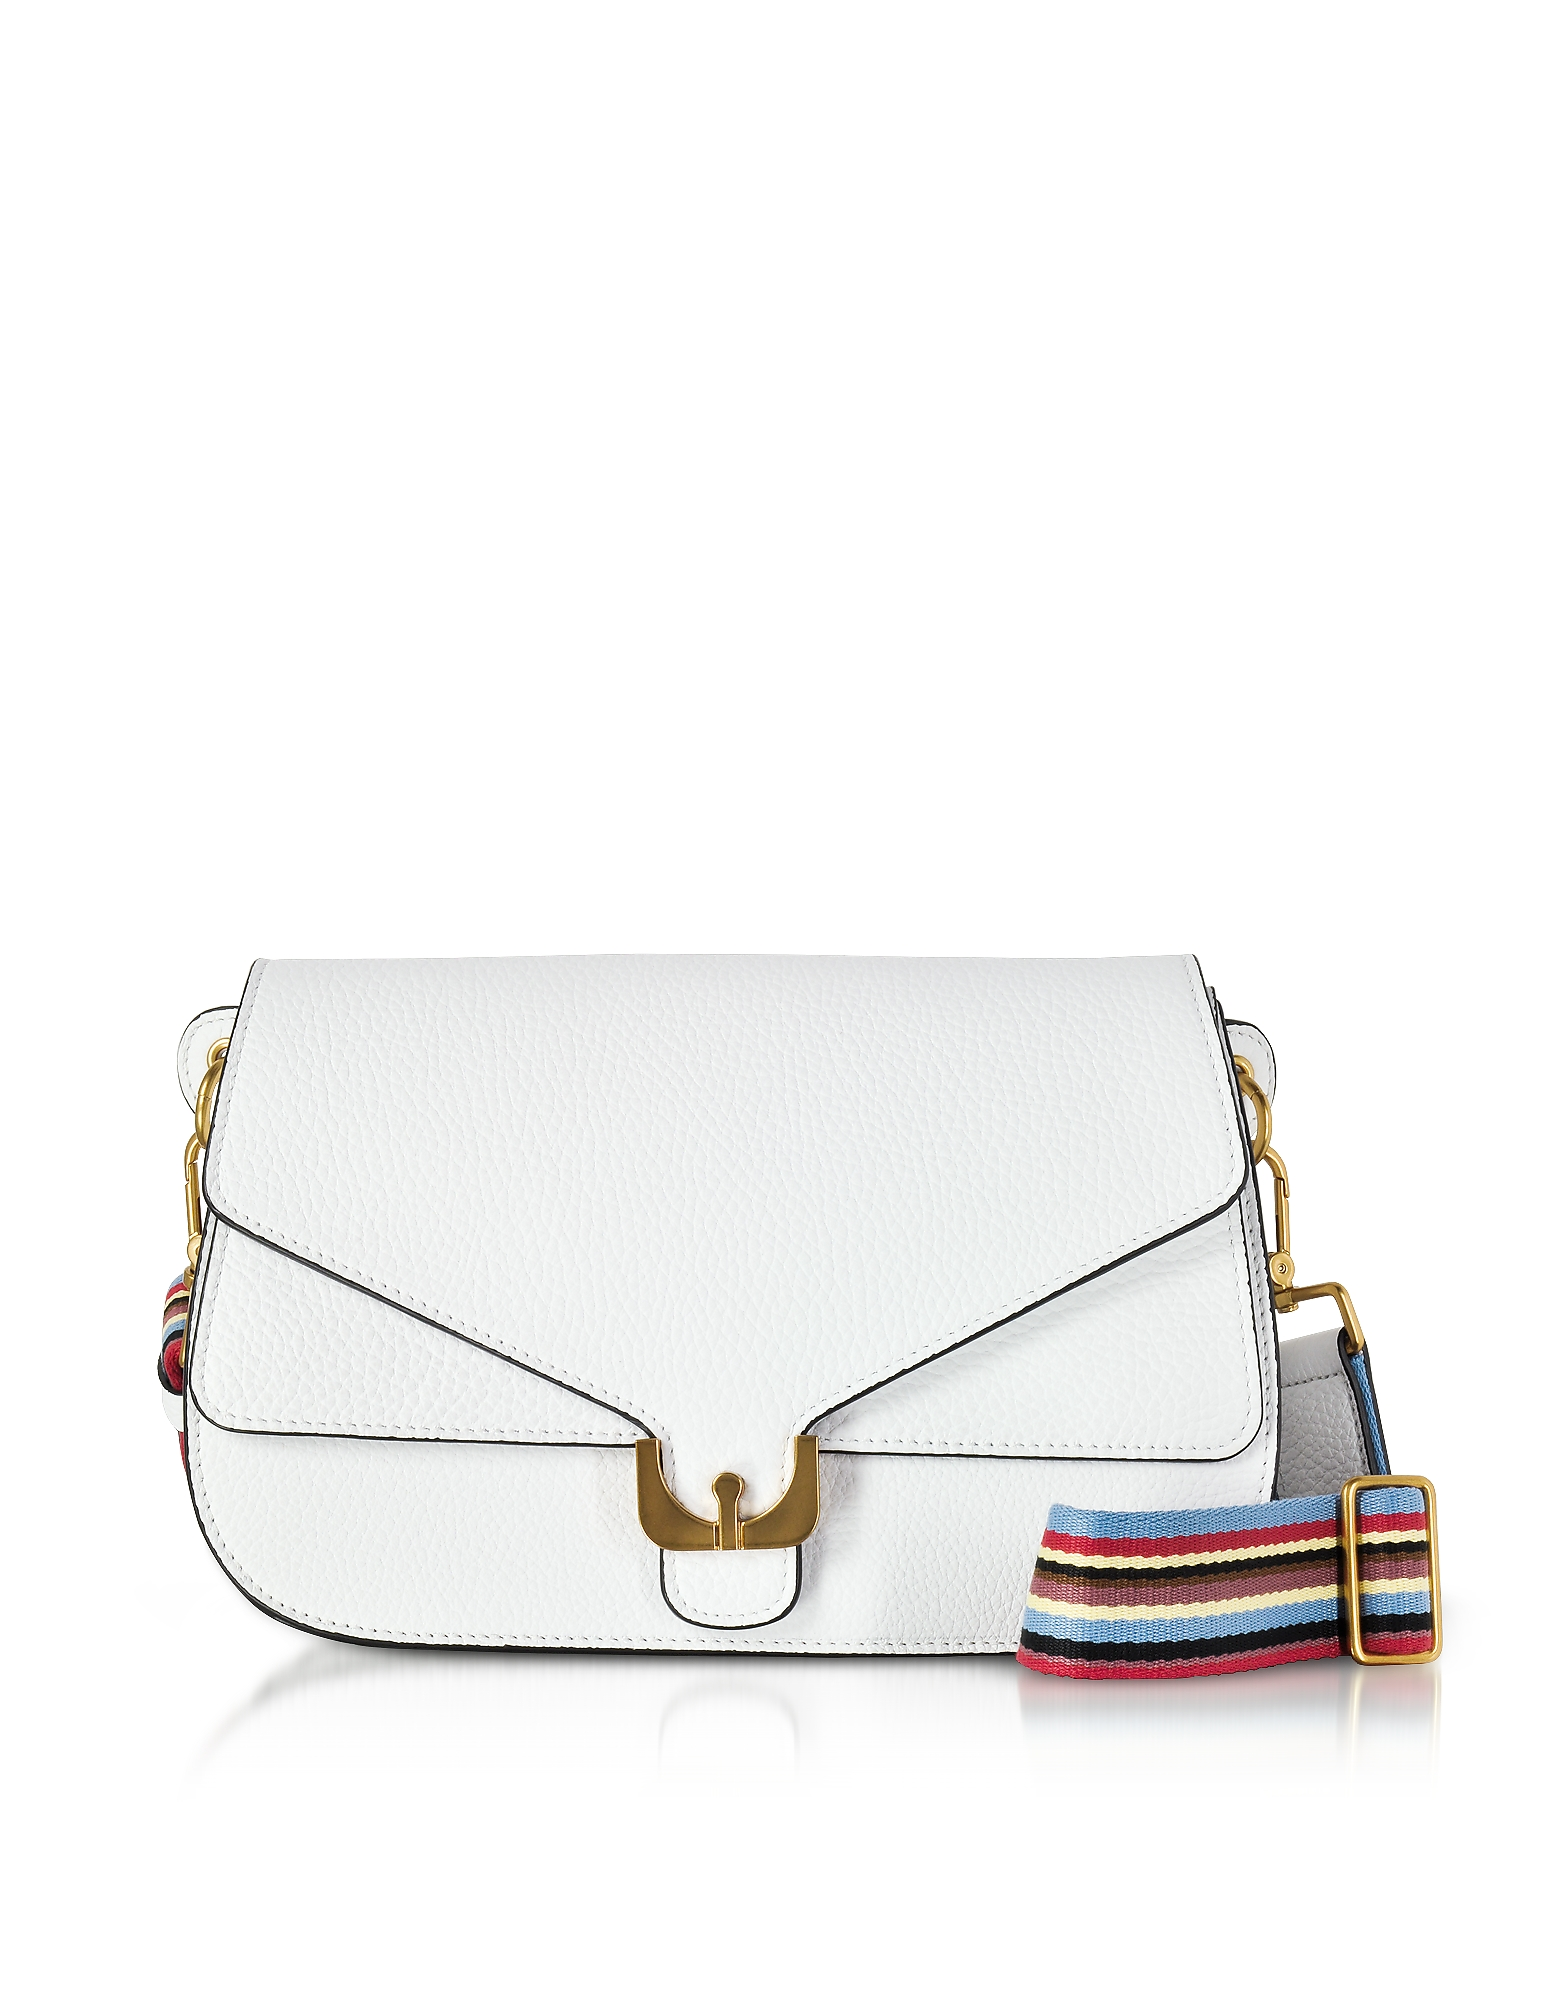 Coccinelle Handbags, White Pebbled Leather Ambrine Rainbow Shoulder Bag